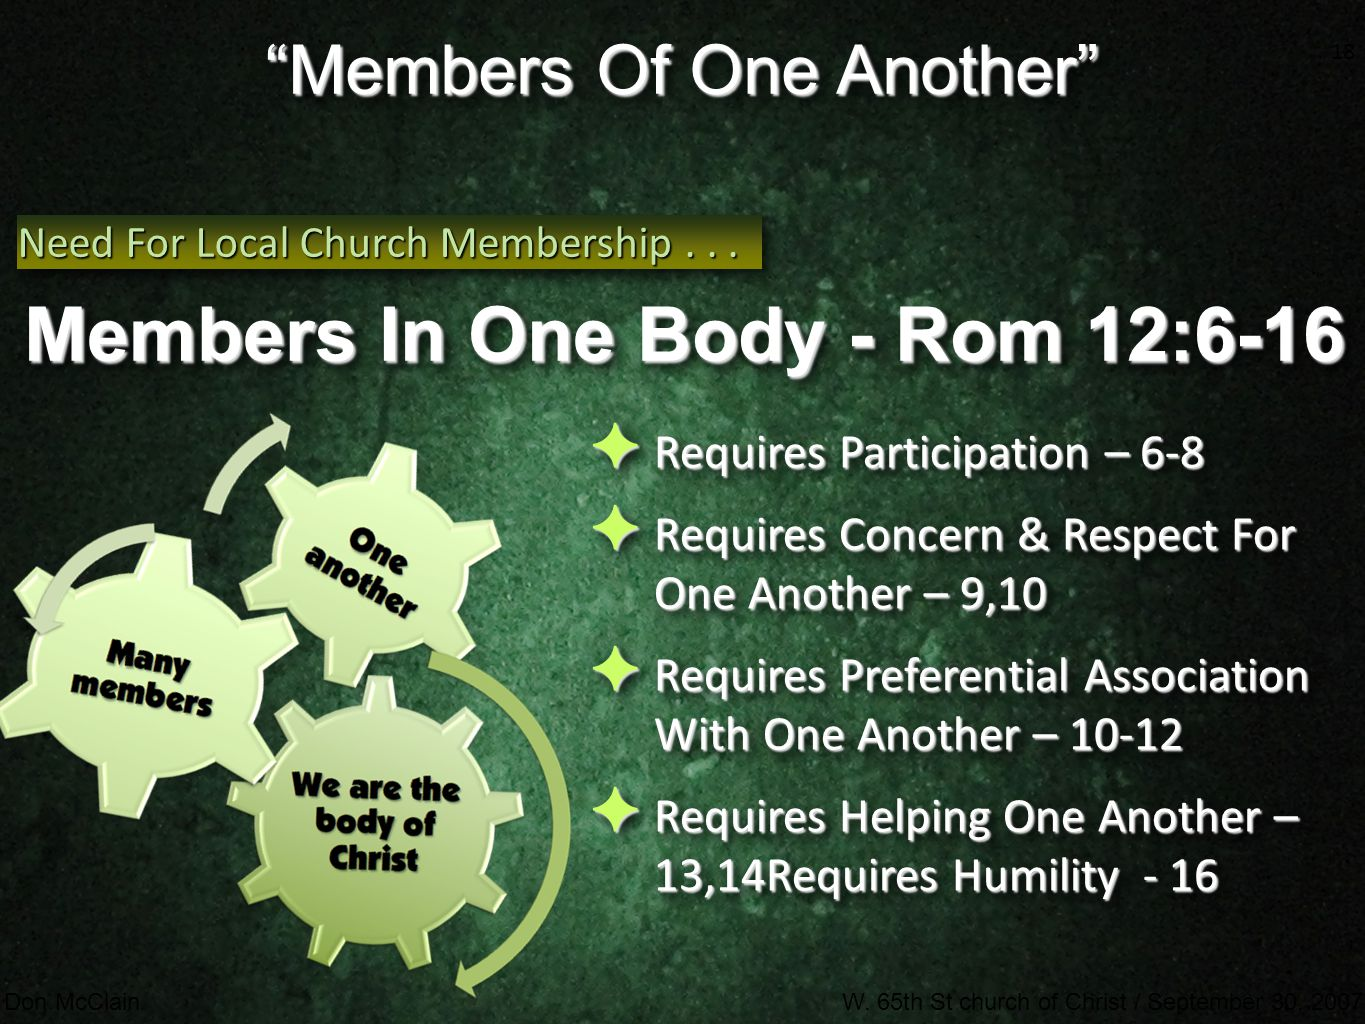 """18 Don McClainW. 65th St church of Christ / September 30, 2007 18 """"Members Of One Another"""" Members In One Body - Rom 12:6-16 Need For Local Church Mem"""